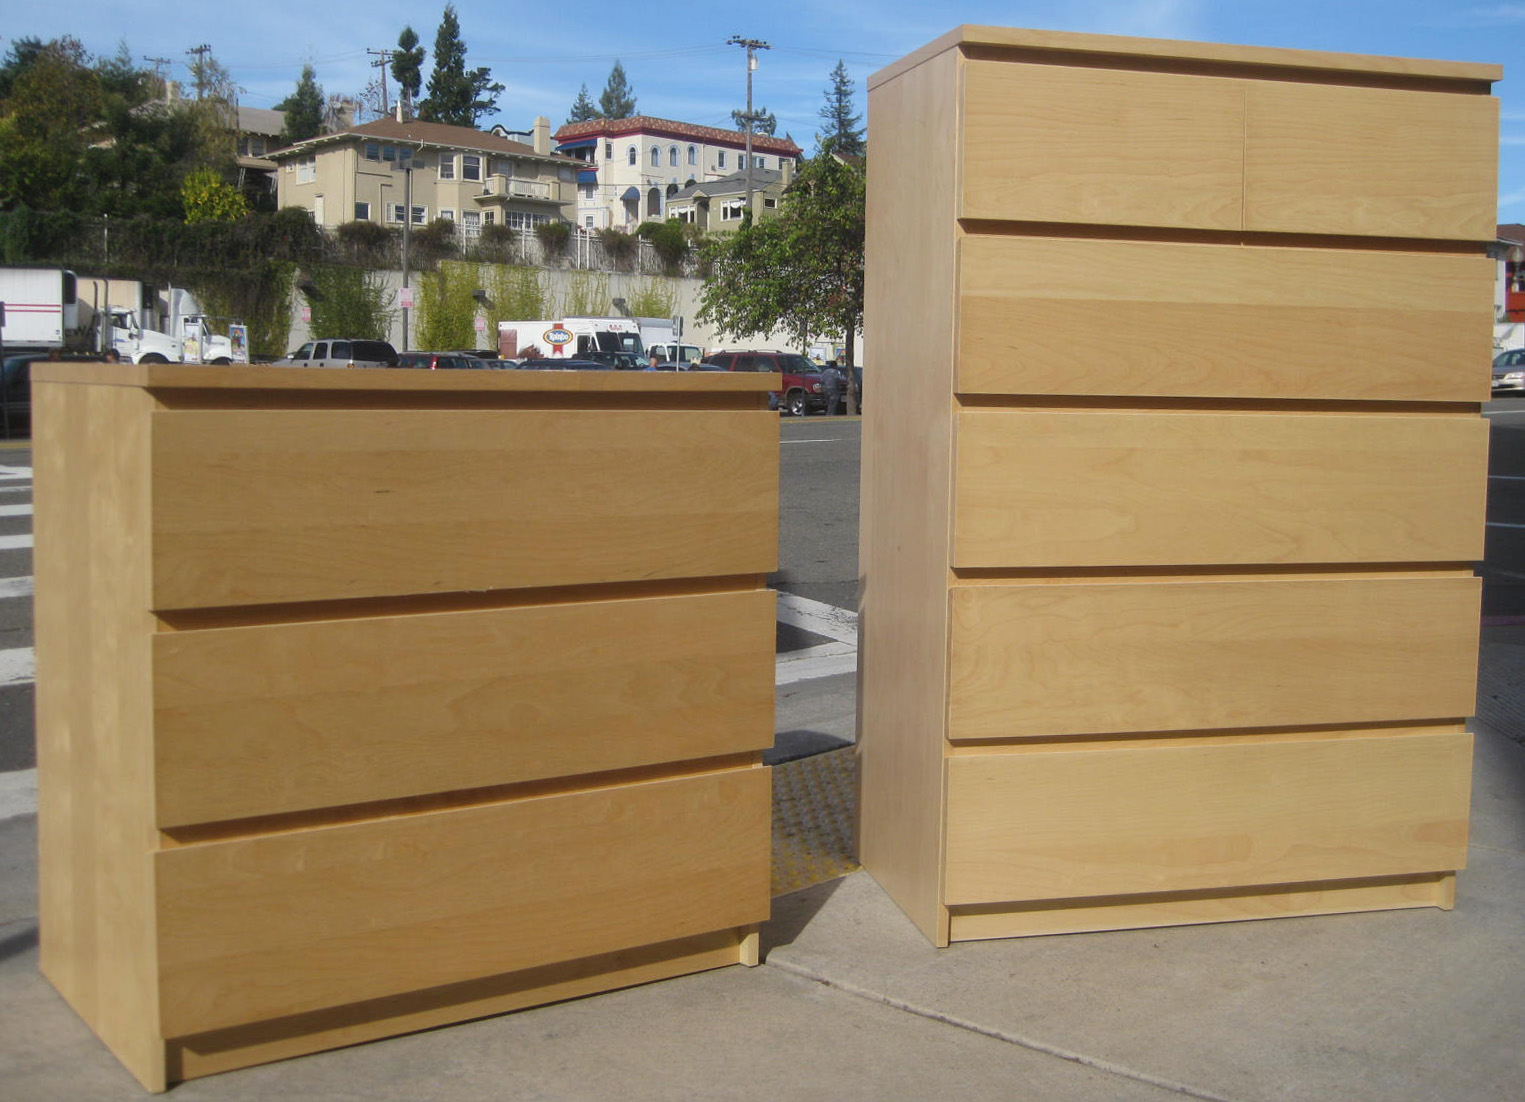 SOLD   Pair of Ikea Chests of Drawers. UHURU FURNITURE  amp  COLLECTIBLES  SOLD   Pair of Ikea Chests of Drawers